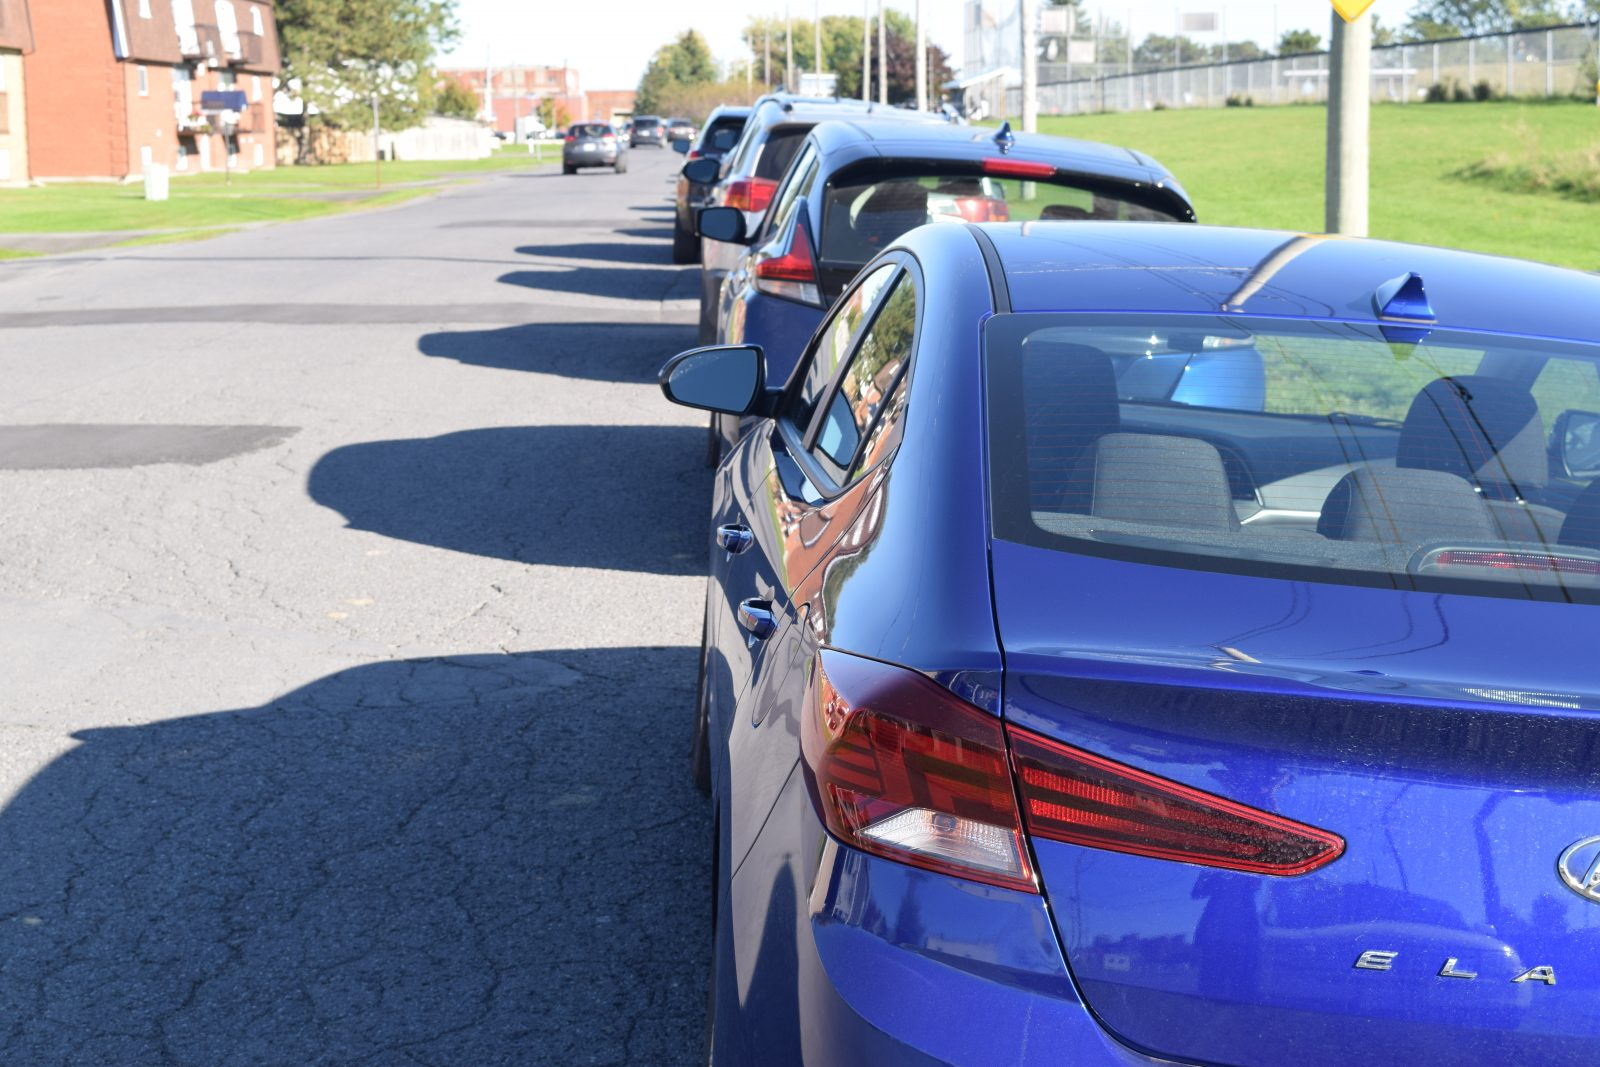 On-street parking rules change